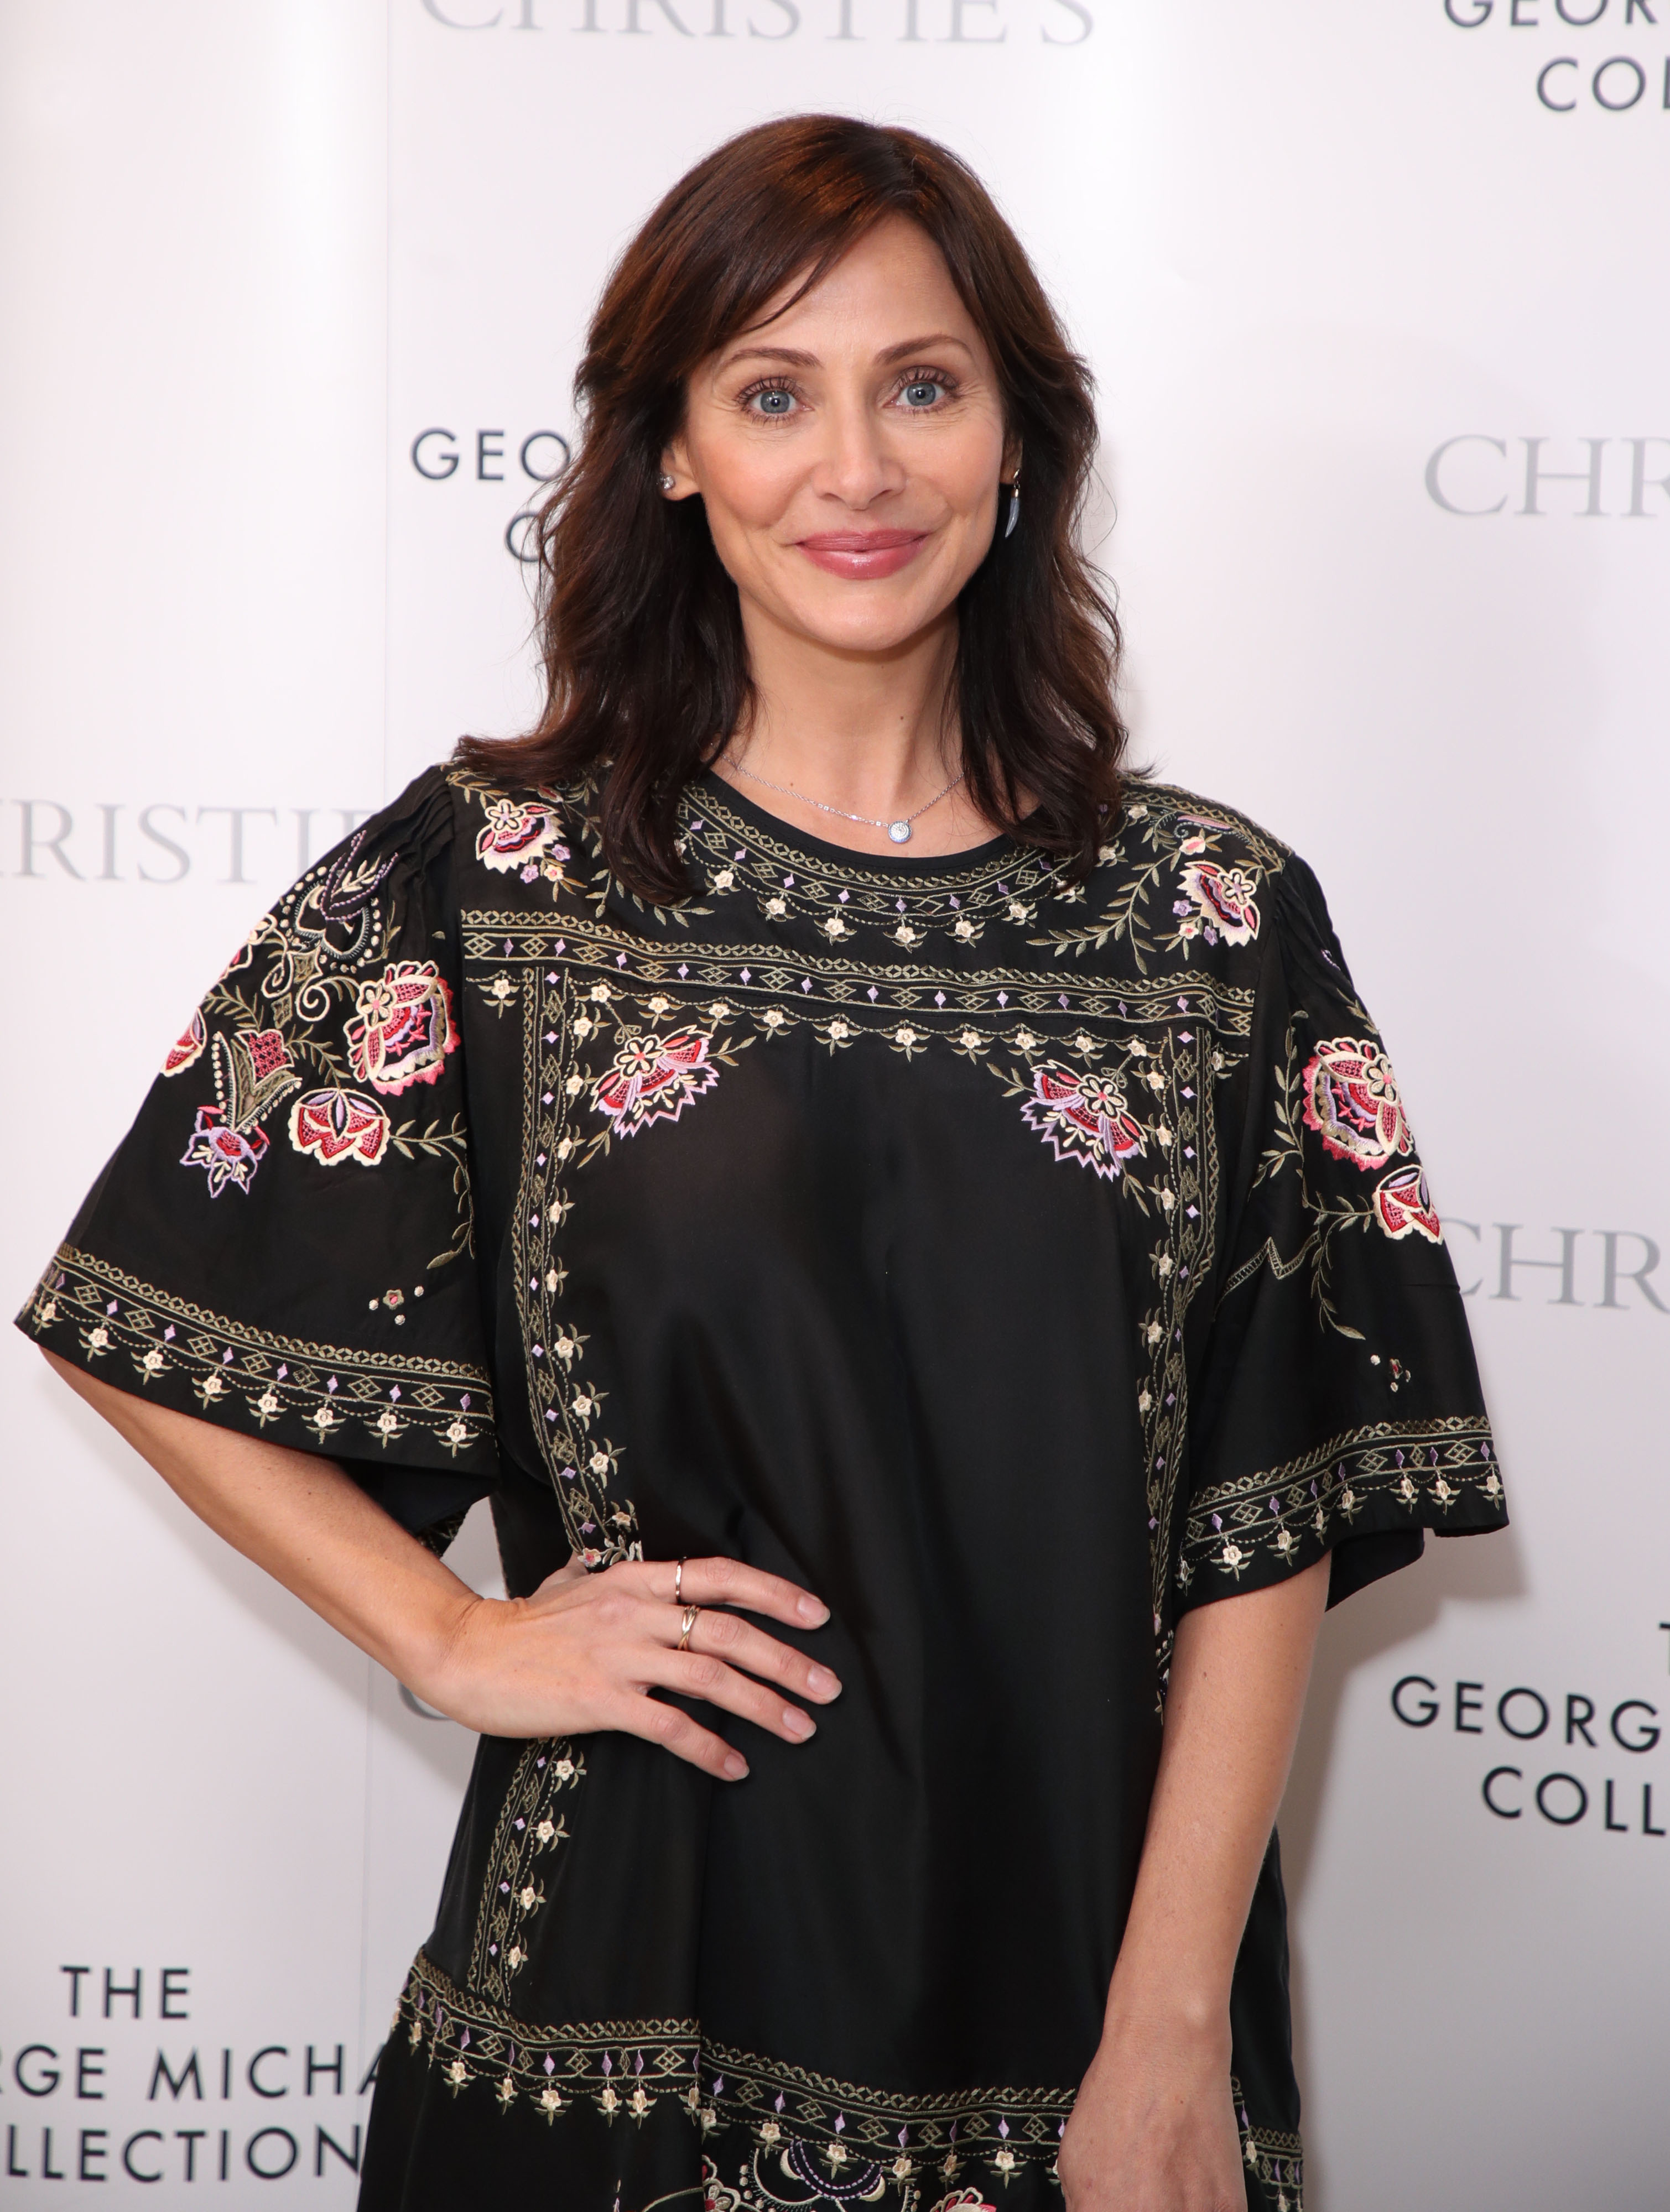 Natalie Imbruglia Expecting First Child with the 'Help of IVF and a Sperm Donor'